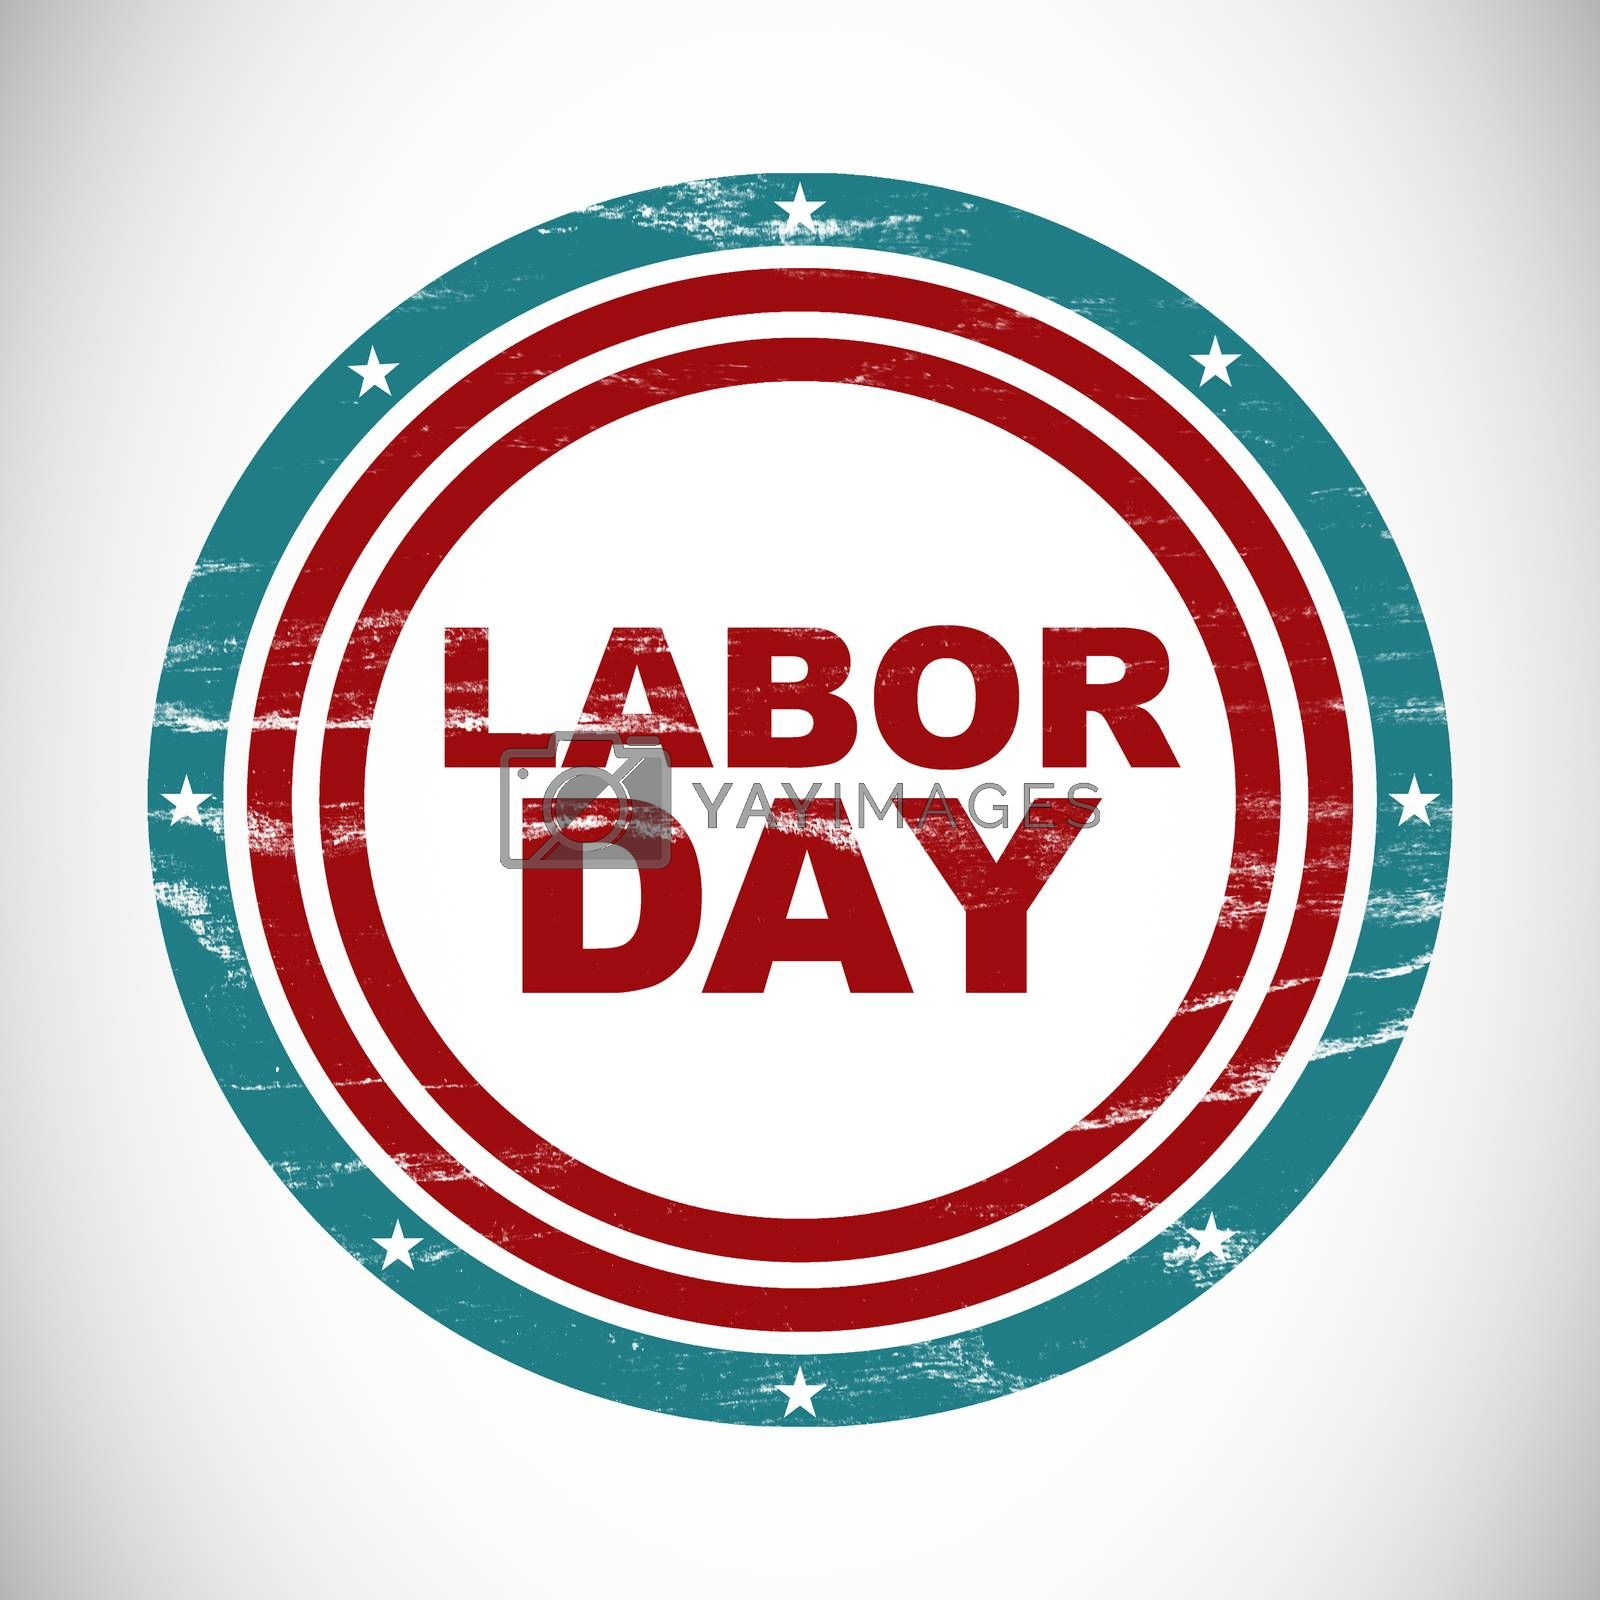 Labor day text in circles by Wavebreakmedia